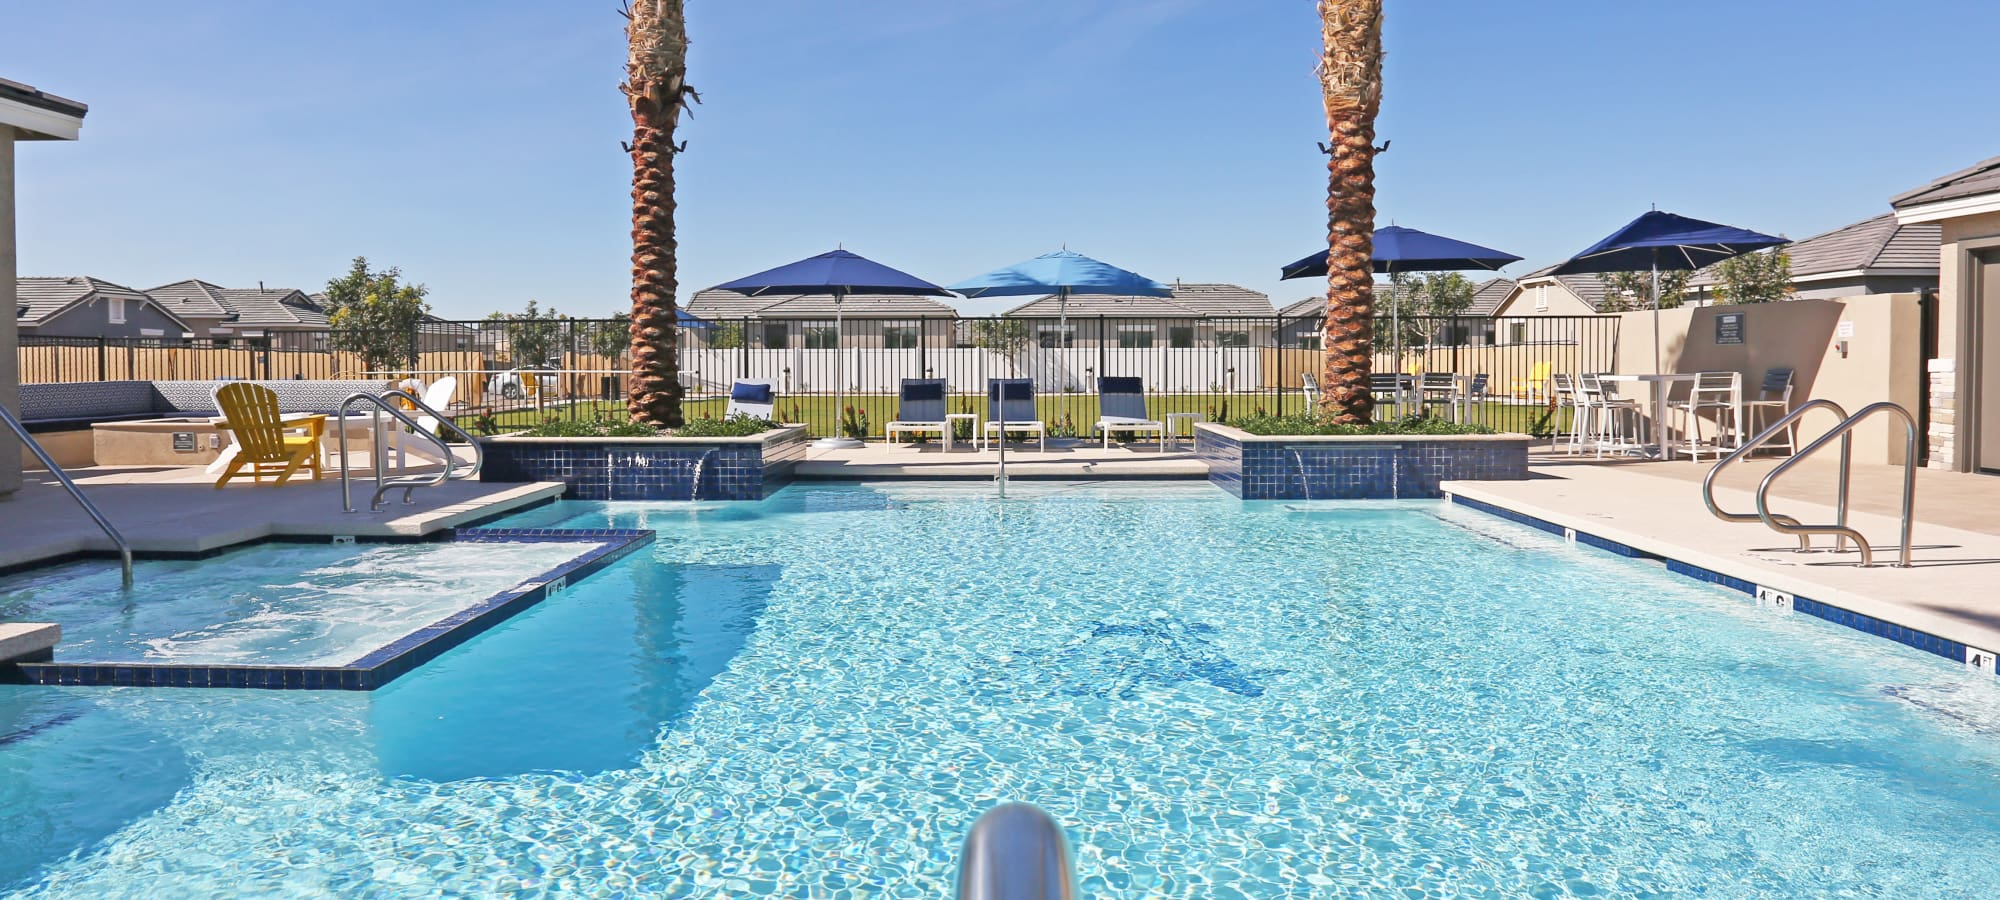 Swimming pool on another beautiful day at Christopher Todd Communities At Stadium in Glendale, Arizona